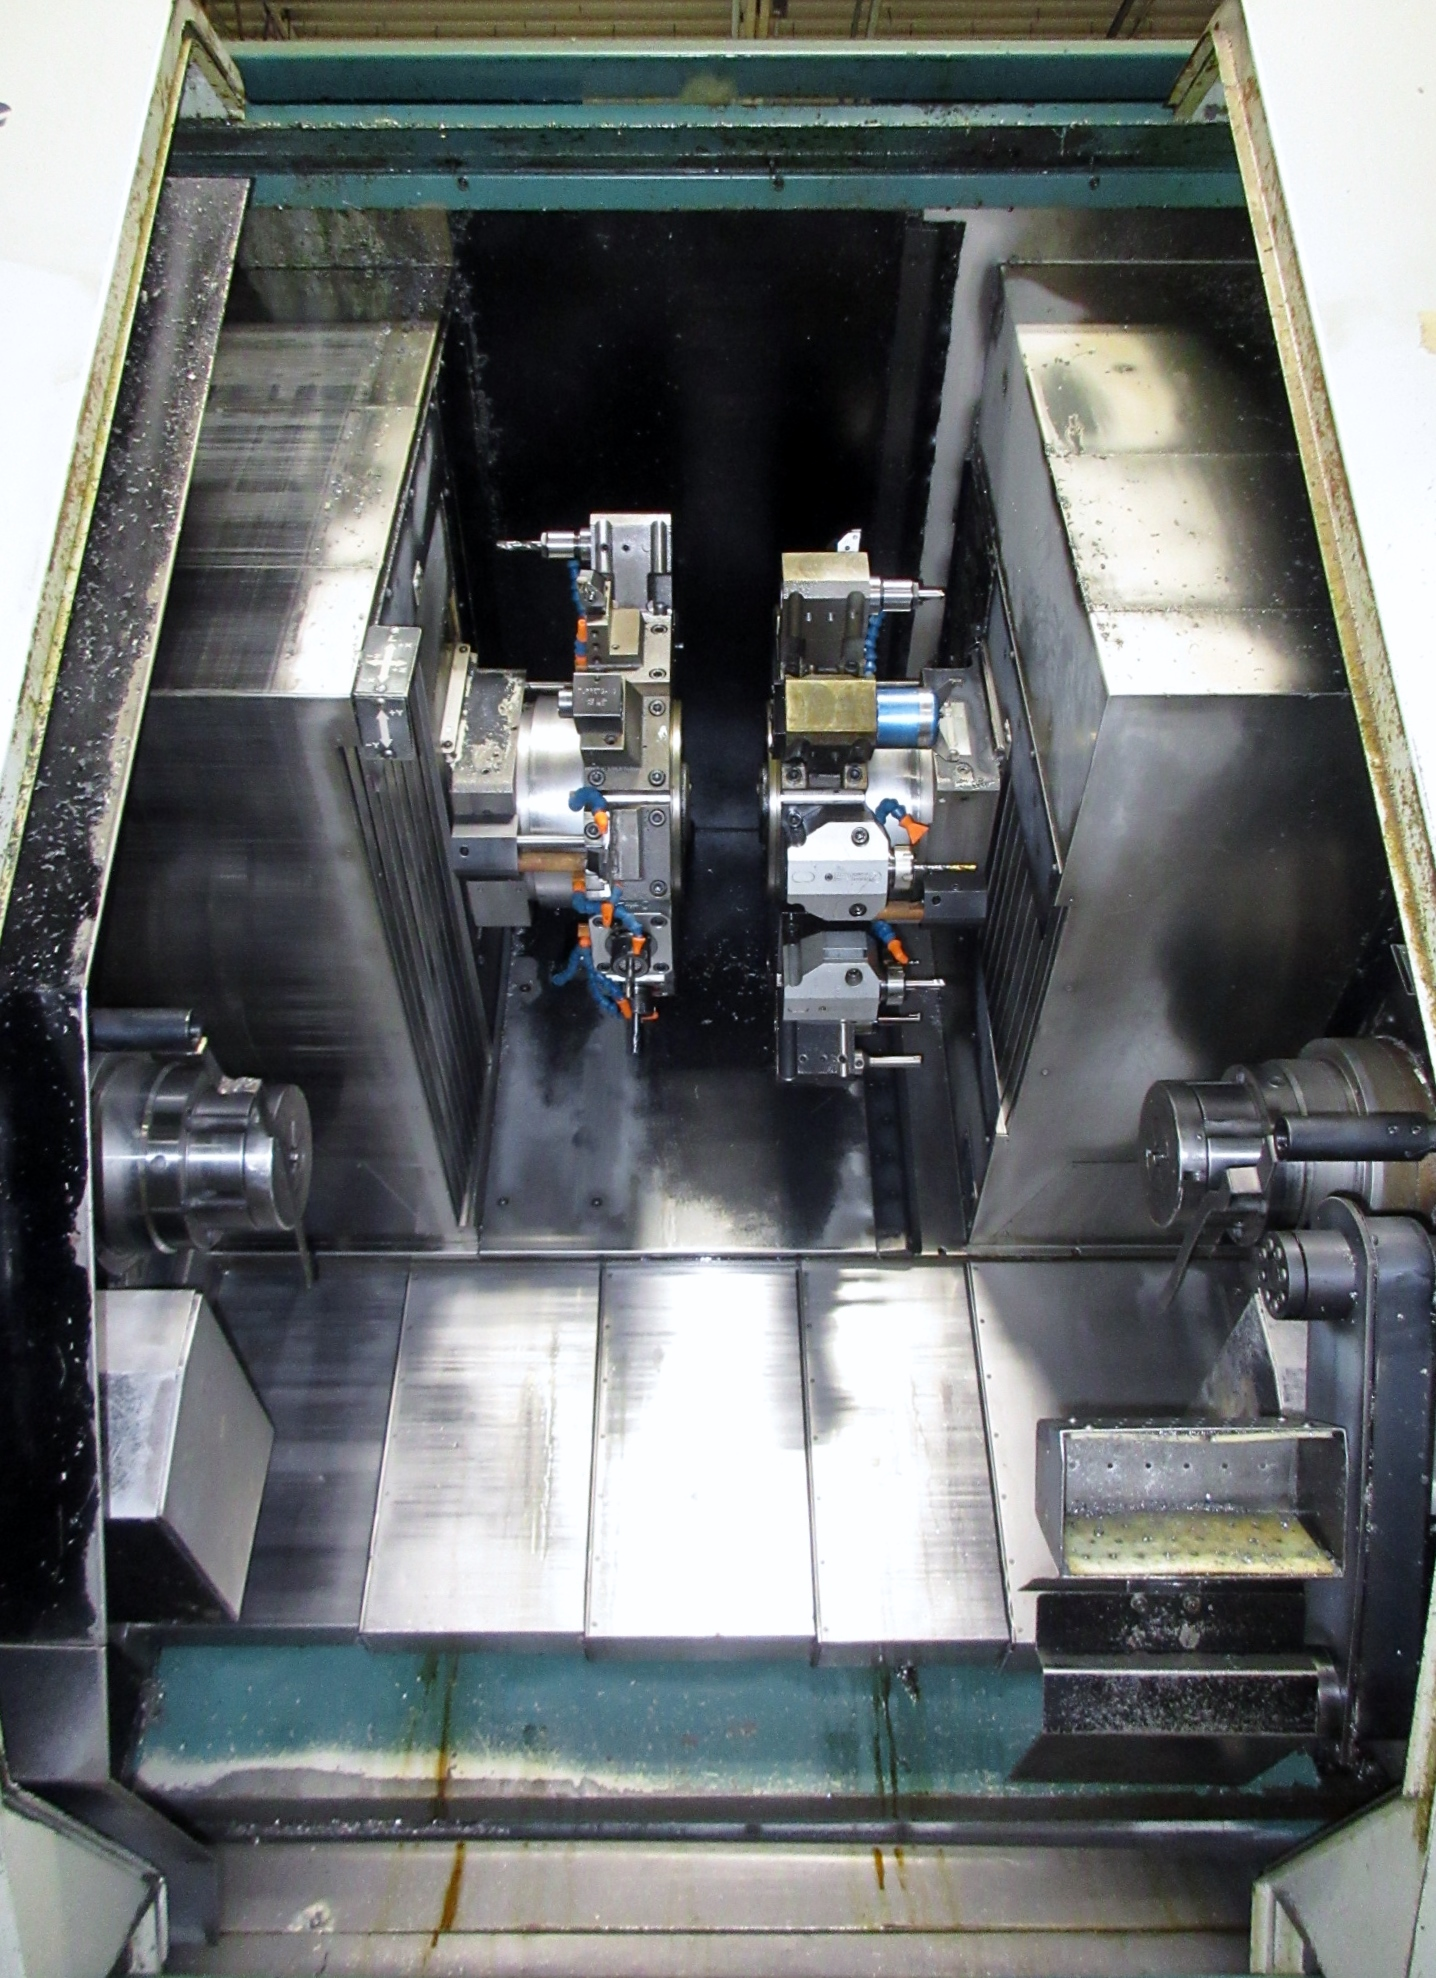 NAKAMURA TOME TW-30MM 7-AXIS CNC TWIN SPINDLE TURNING CENTER - Image 4 of 21